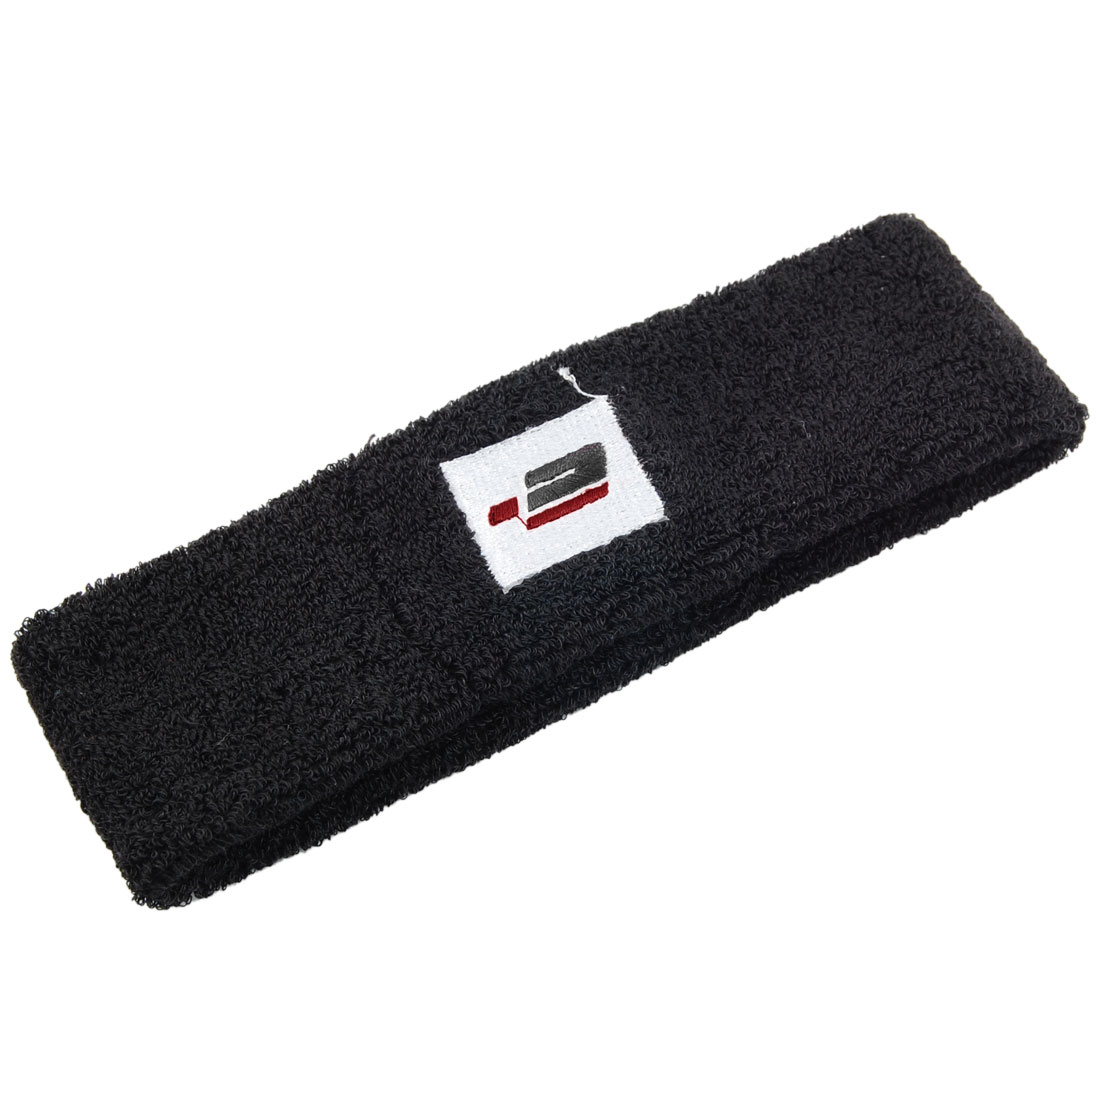 Black Elastic Soft Terry Exercises Protective Headband Sweat Band